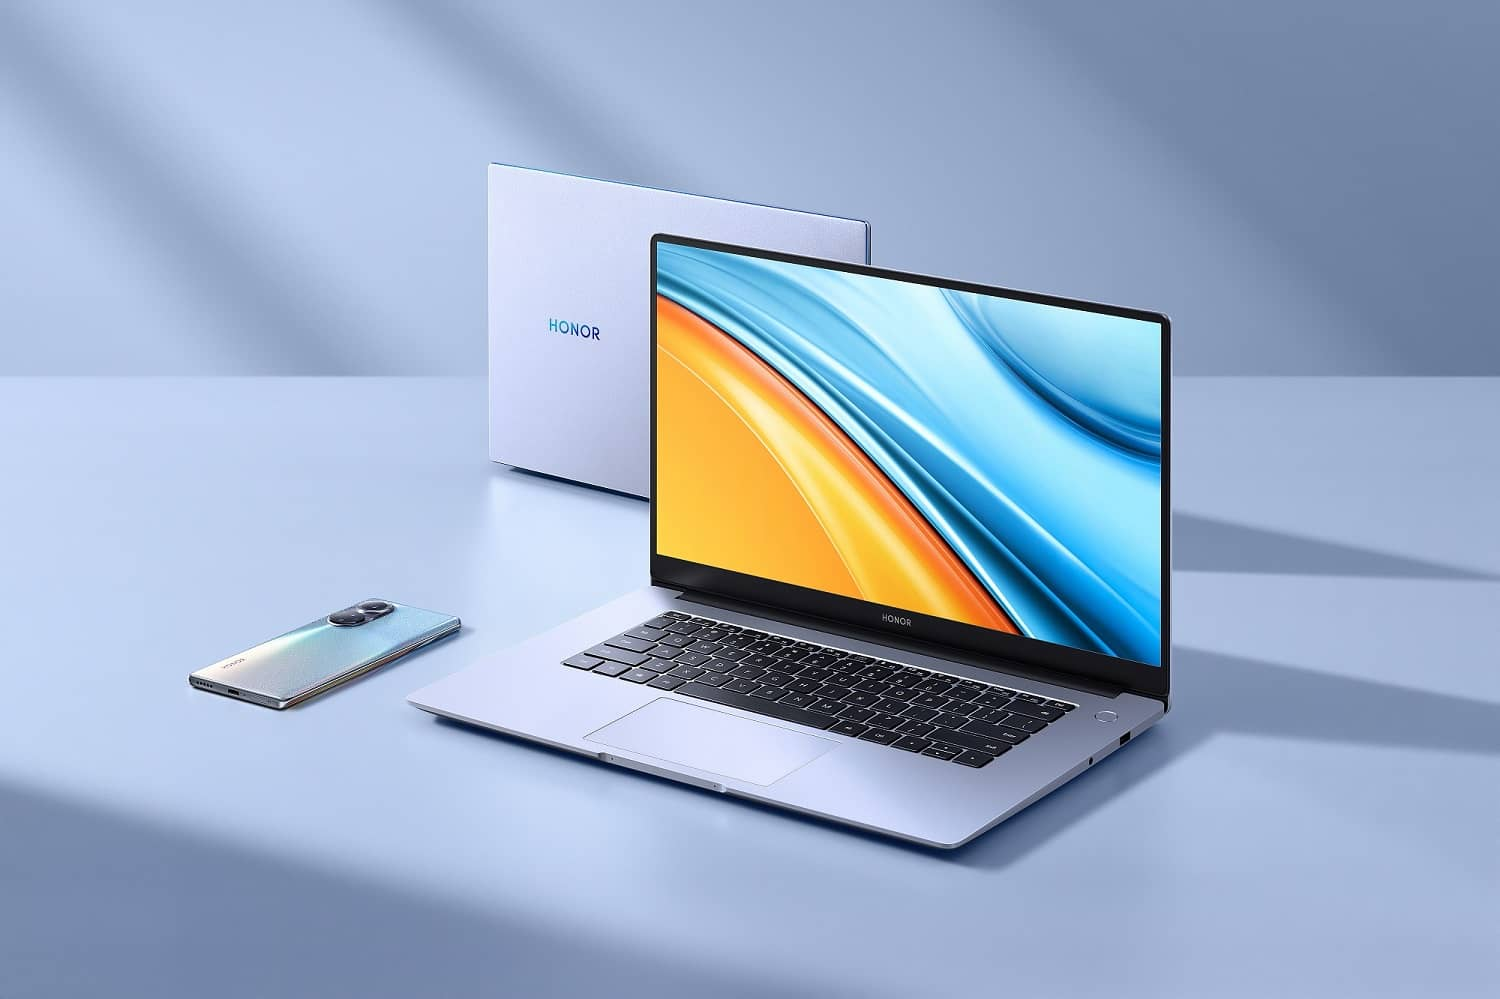 Brand New HONOR MagicBook 15 AMD is Available for Pre-Order at RM2,499